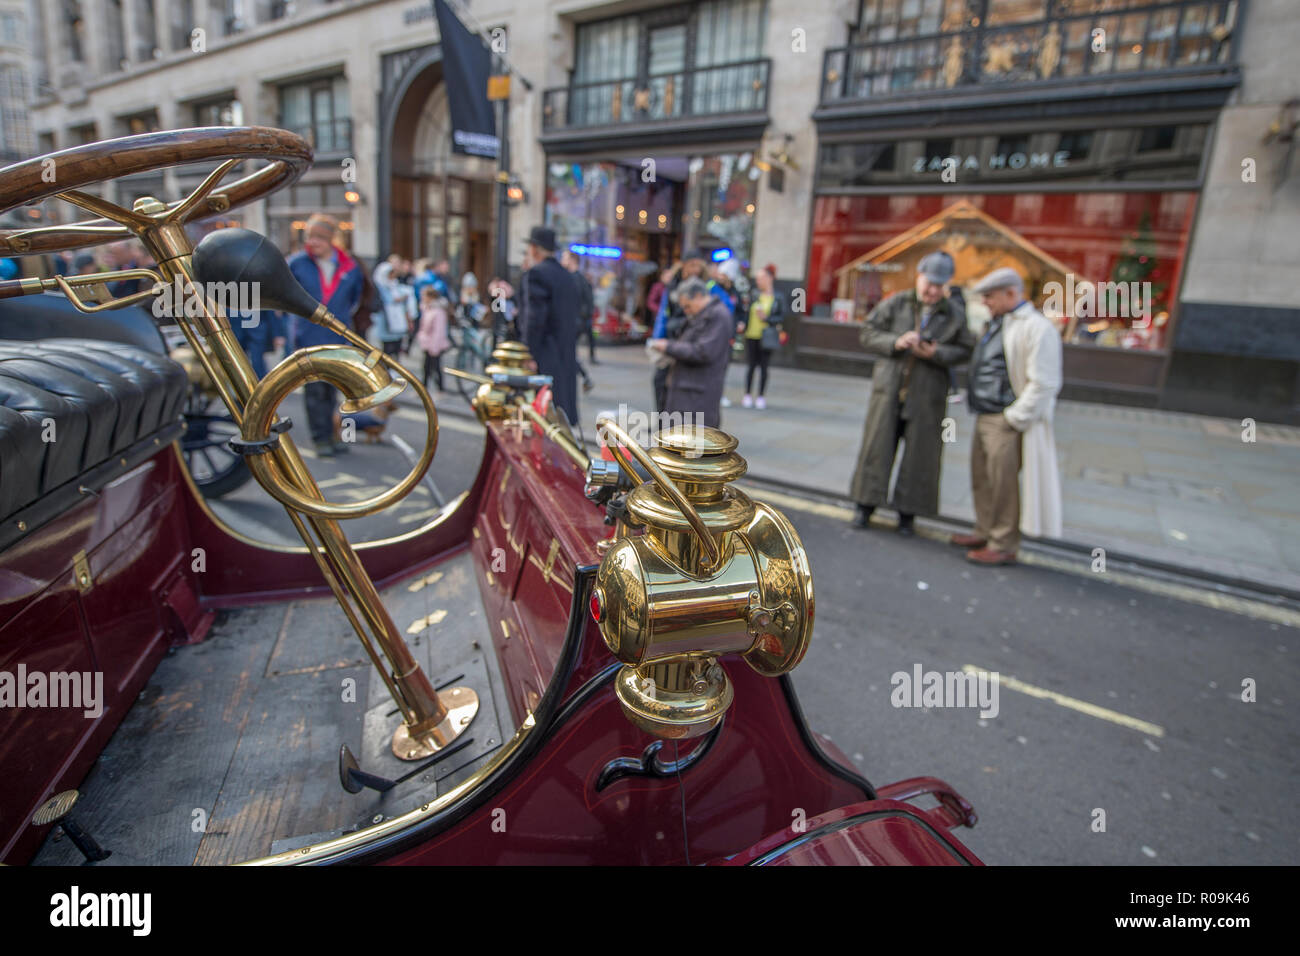 1904 In London Stock Photos & 1904 In London Stock Images - Alamy